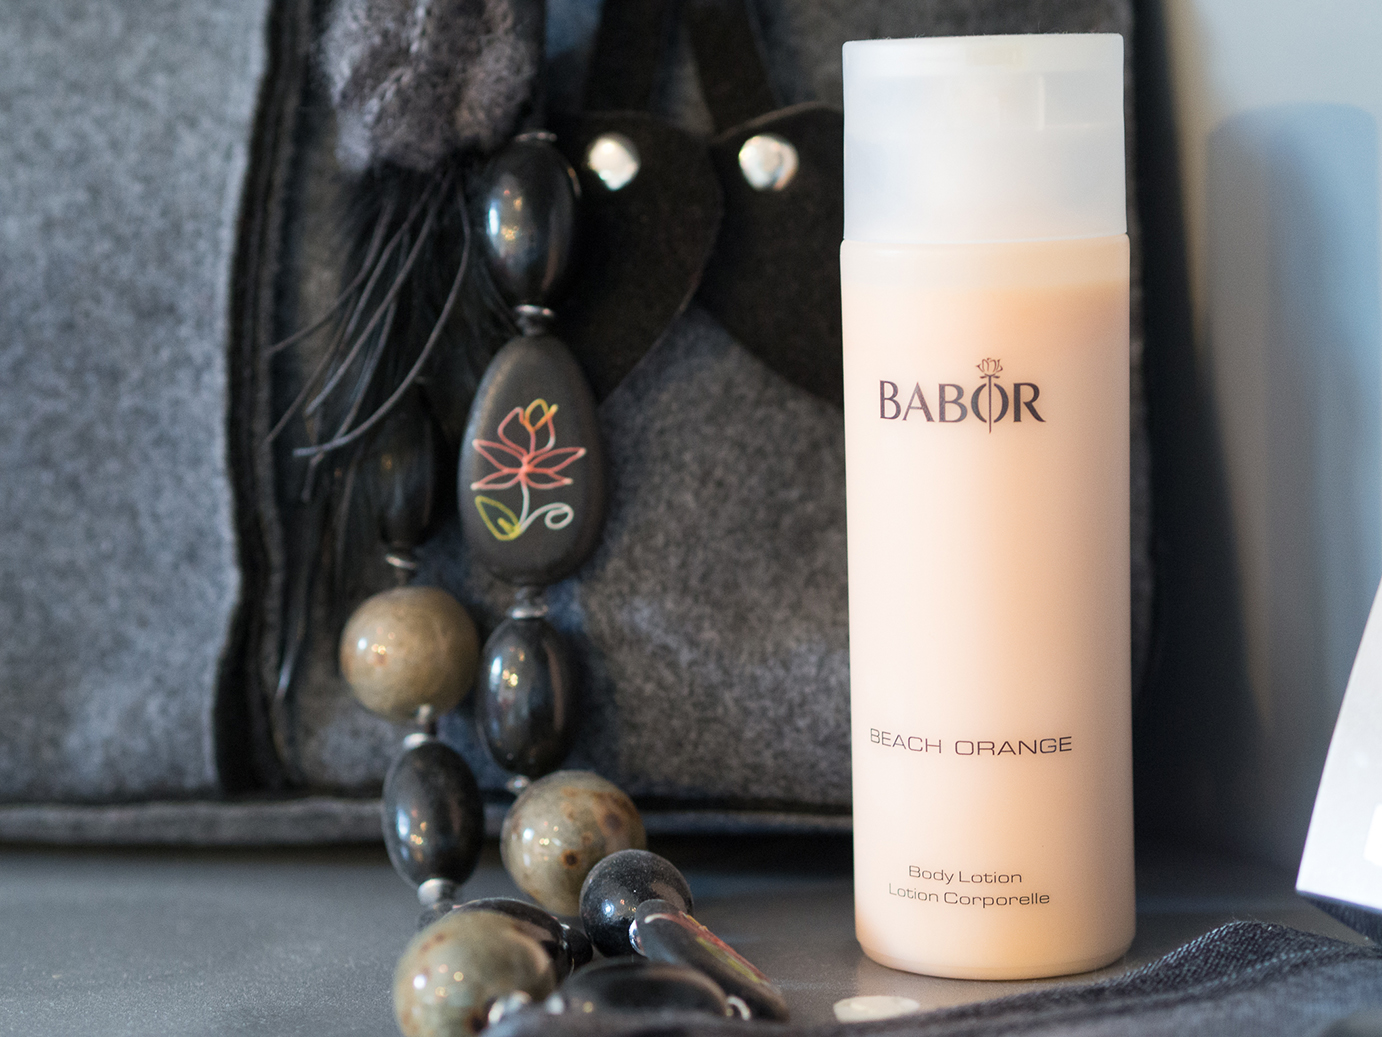 Babor Body Lotion